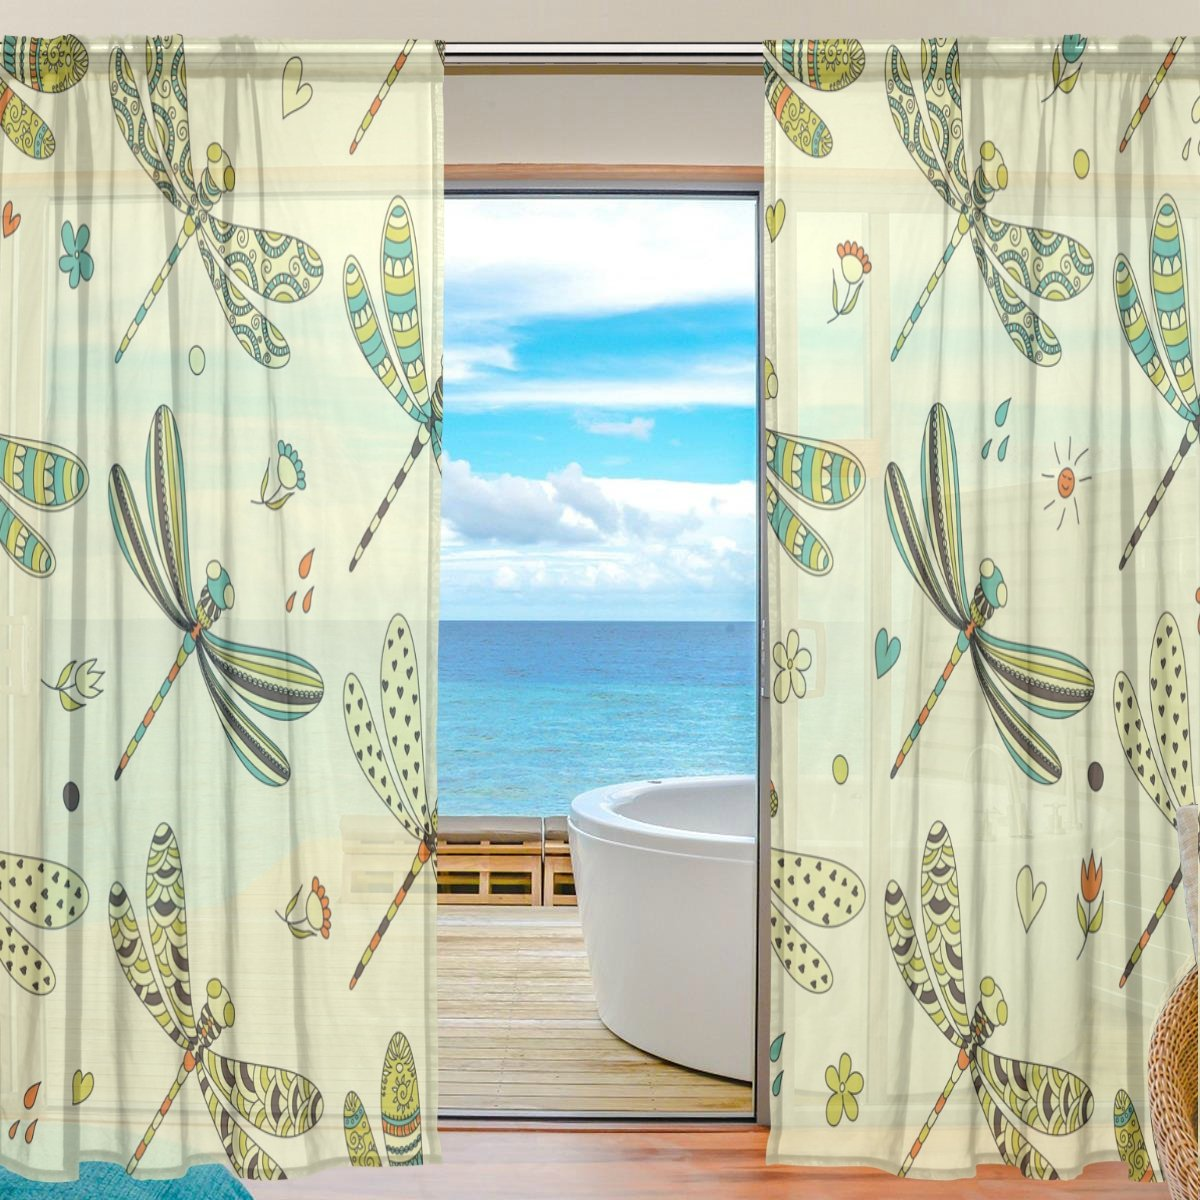 SEULIFE Window Sheer Curtain Animal Dragonfly Pattern Voile Curtain Drapes for Door Kitchen Living Room Bedroom 55x84 inches 2 Panels